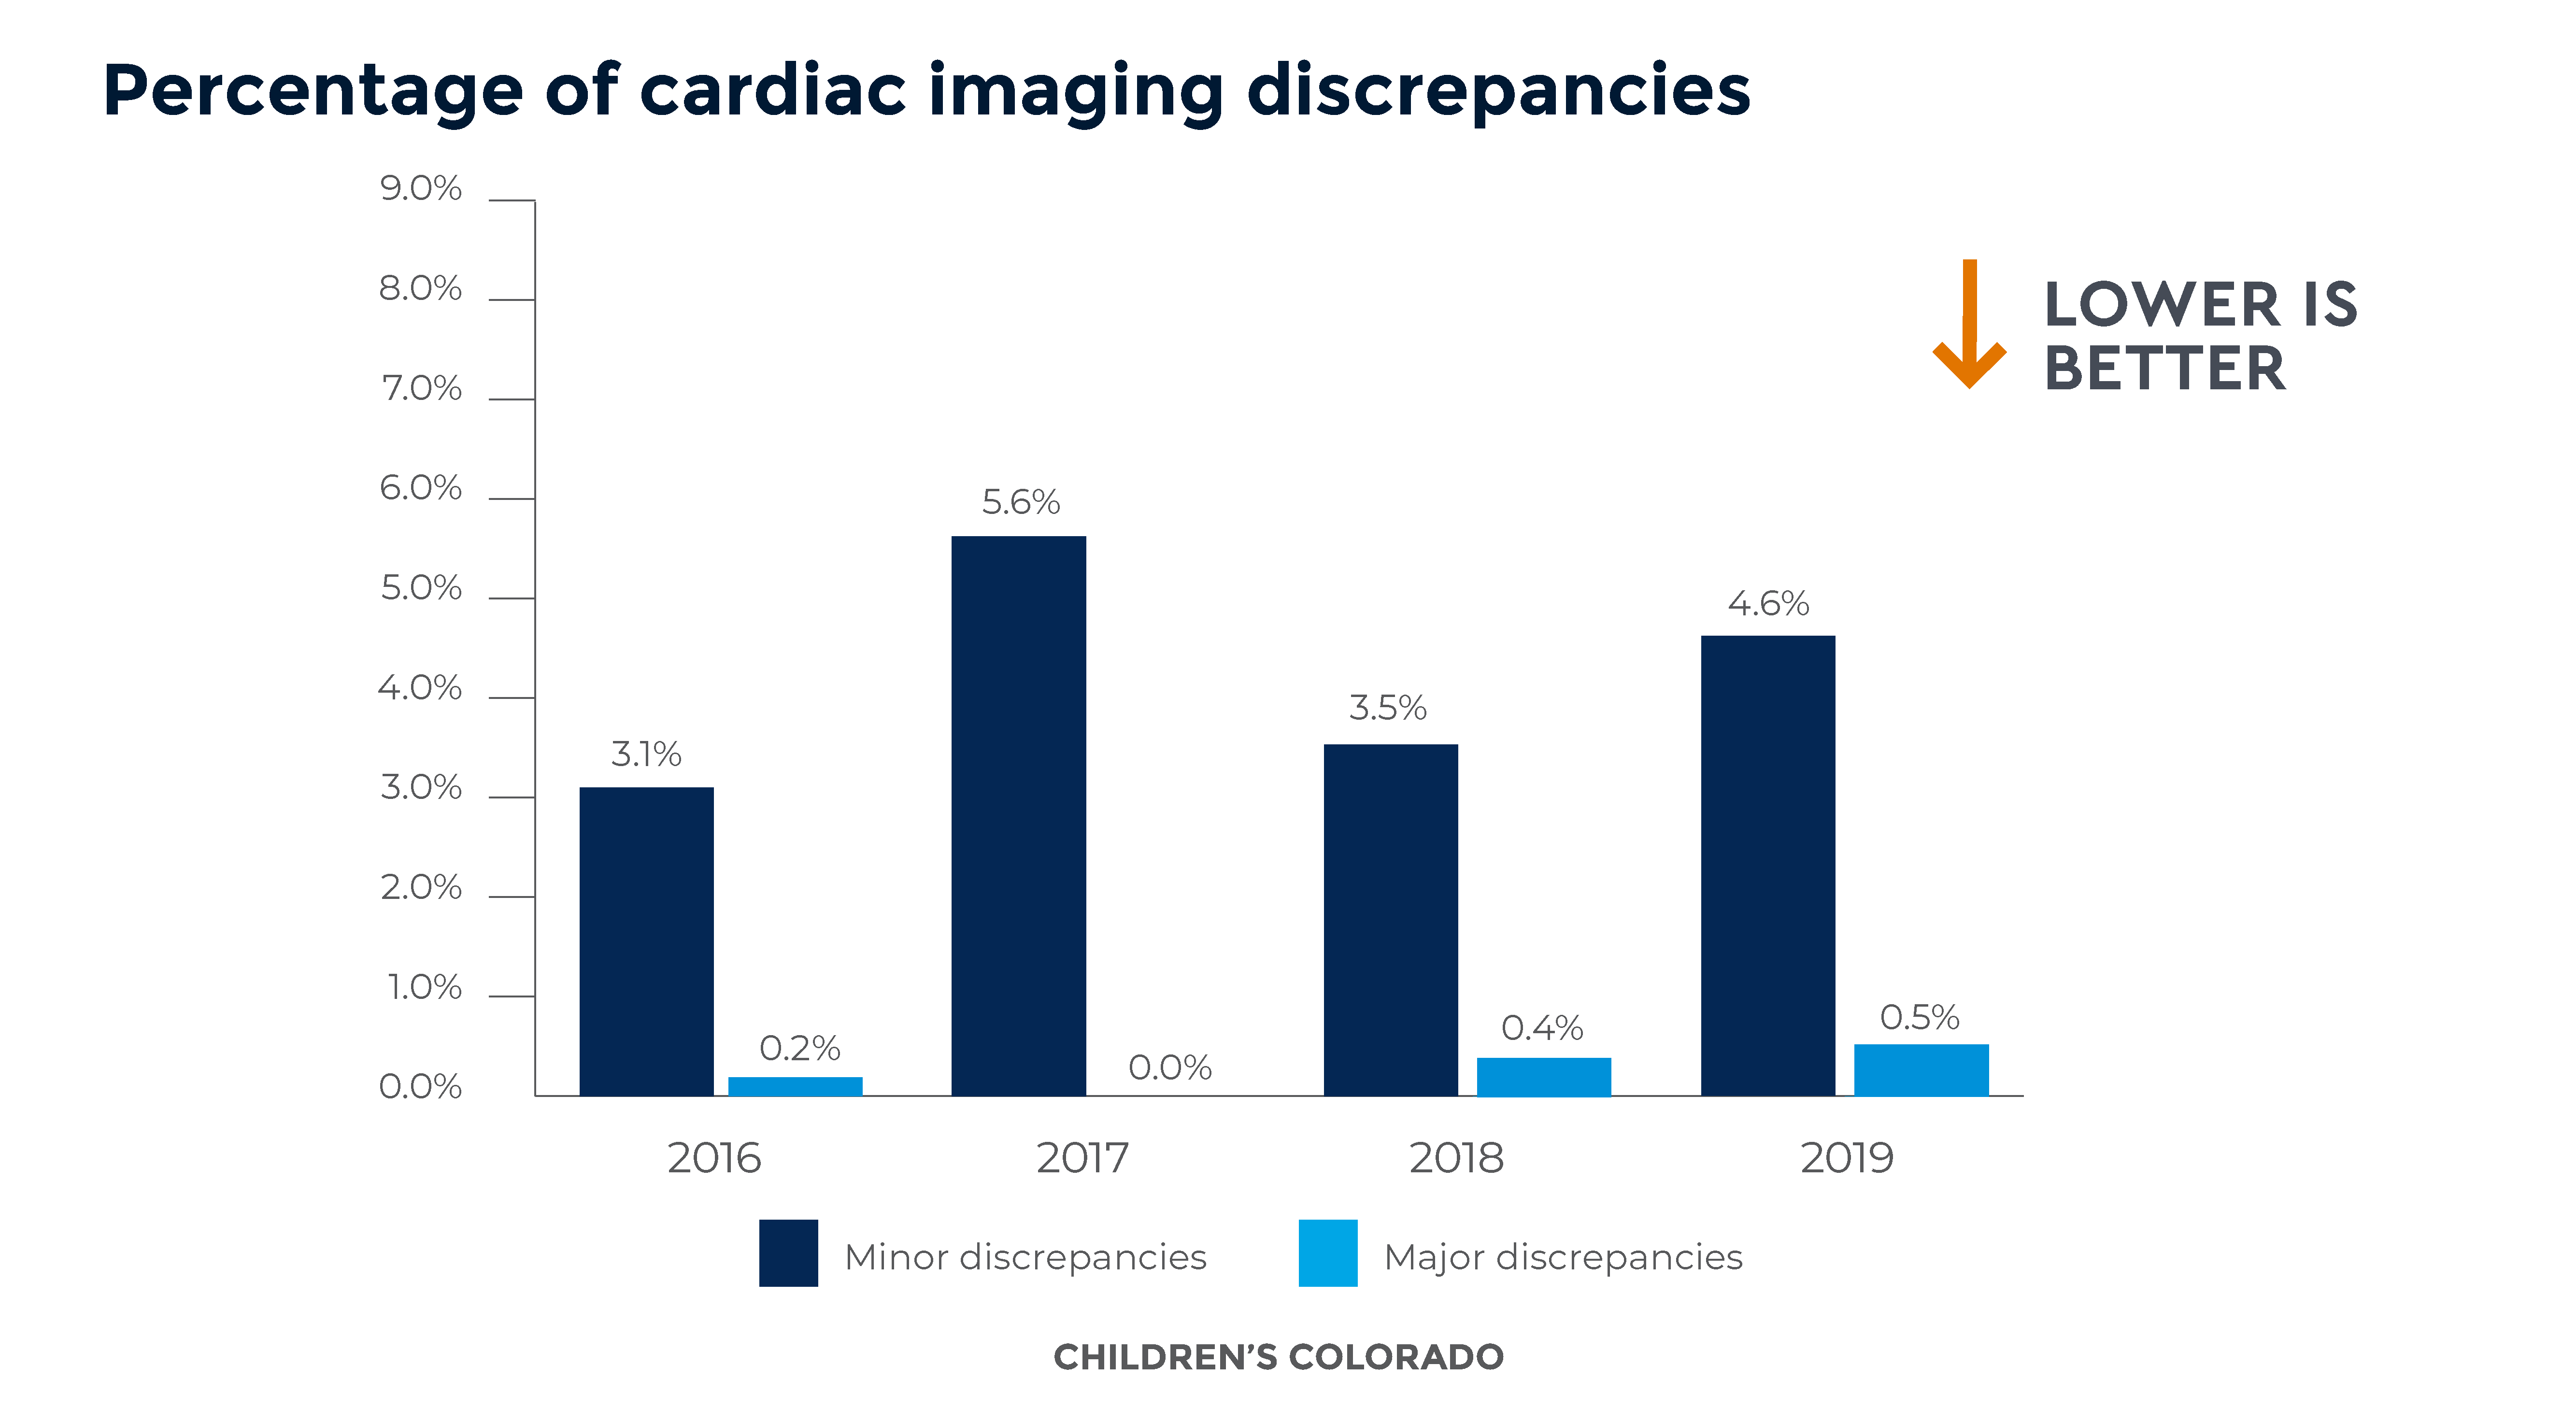 Graph showing the percentage of minor and major imaging discrepancies (out of all images, or 100%) by year at Children's Colorado. 2016: Minor = 3.1%, Major = 0.2%; 2017: Minor = 5.6%, Major = 0.0%; 2018: Minor = 3.5%, Major = 0.4%; 2019: Minor = 4.6%, Major = 0.5%